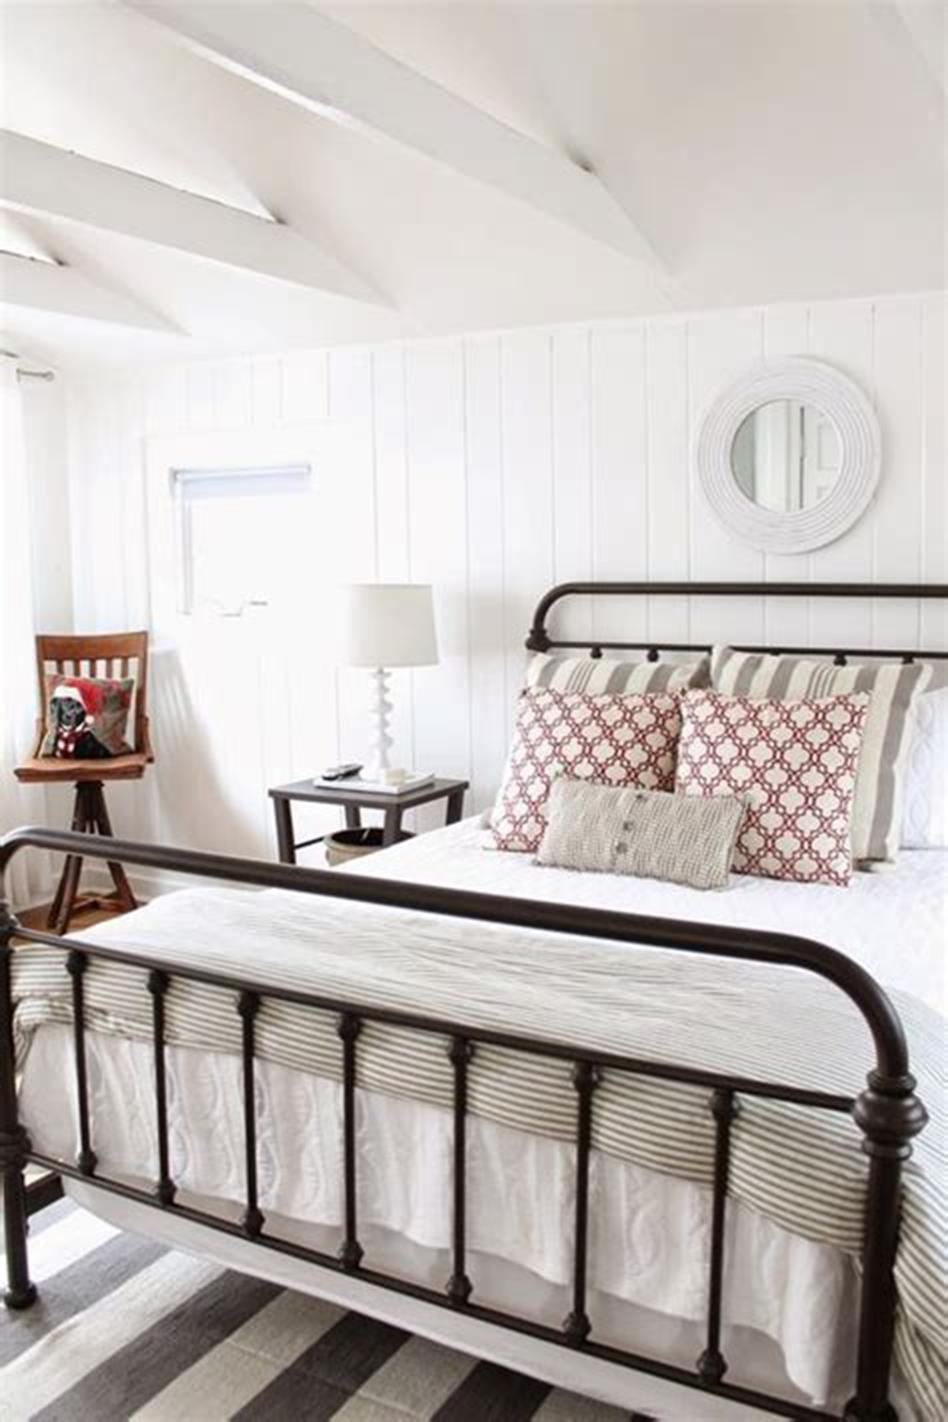 48 Stunning Farmhouse Master Bedroom Design Ideas 2019 50